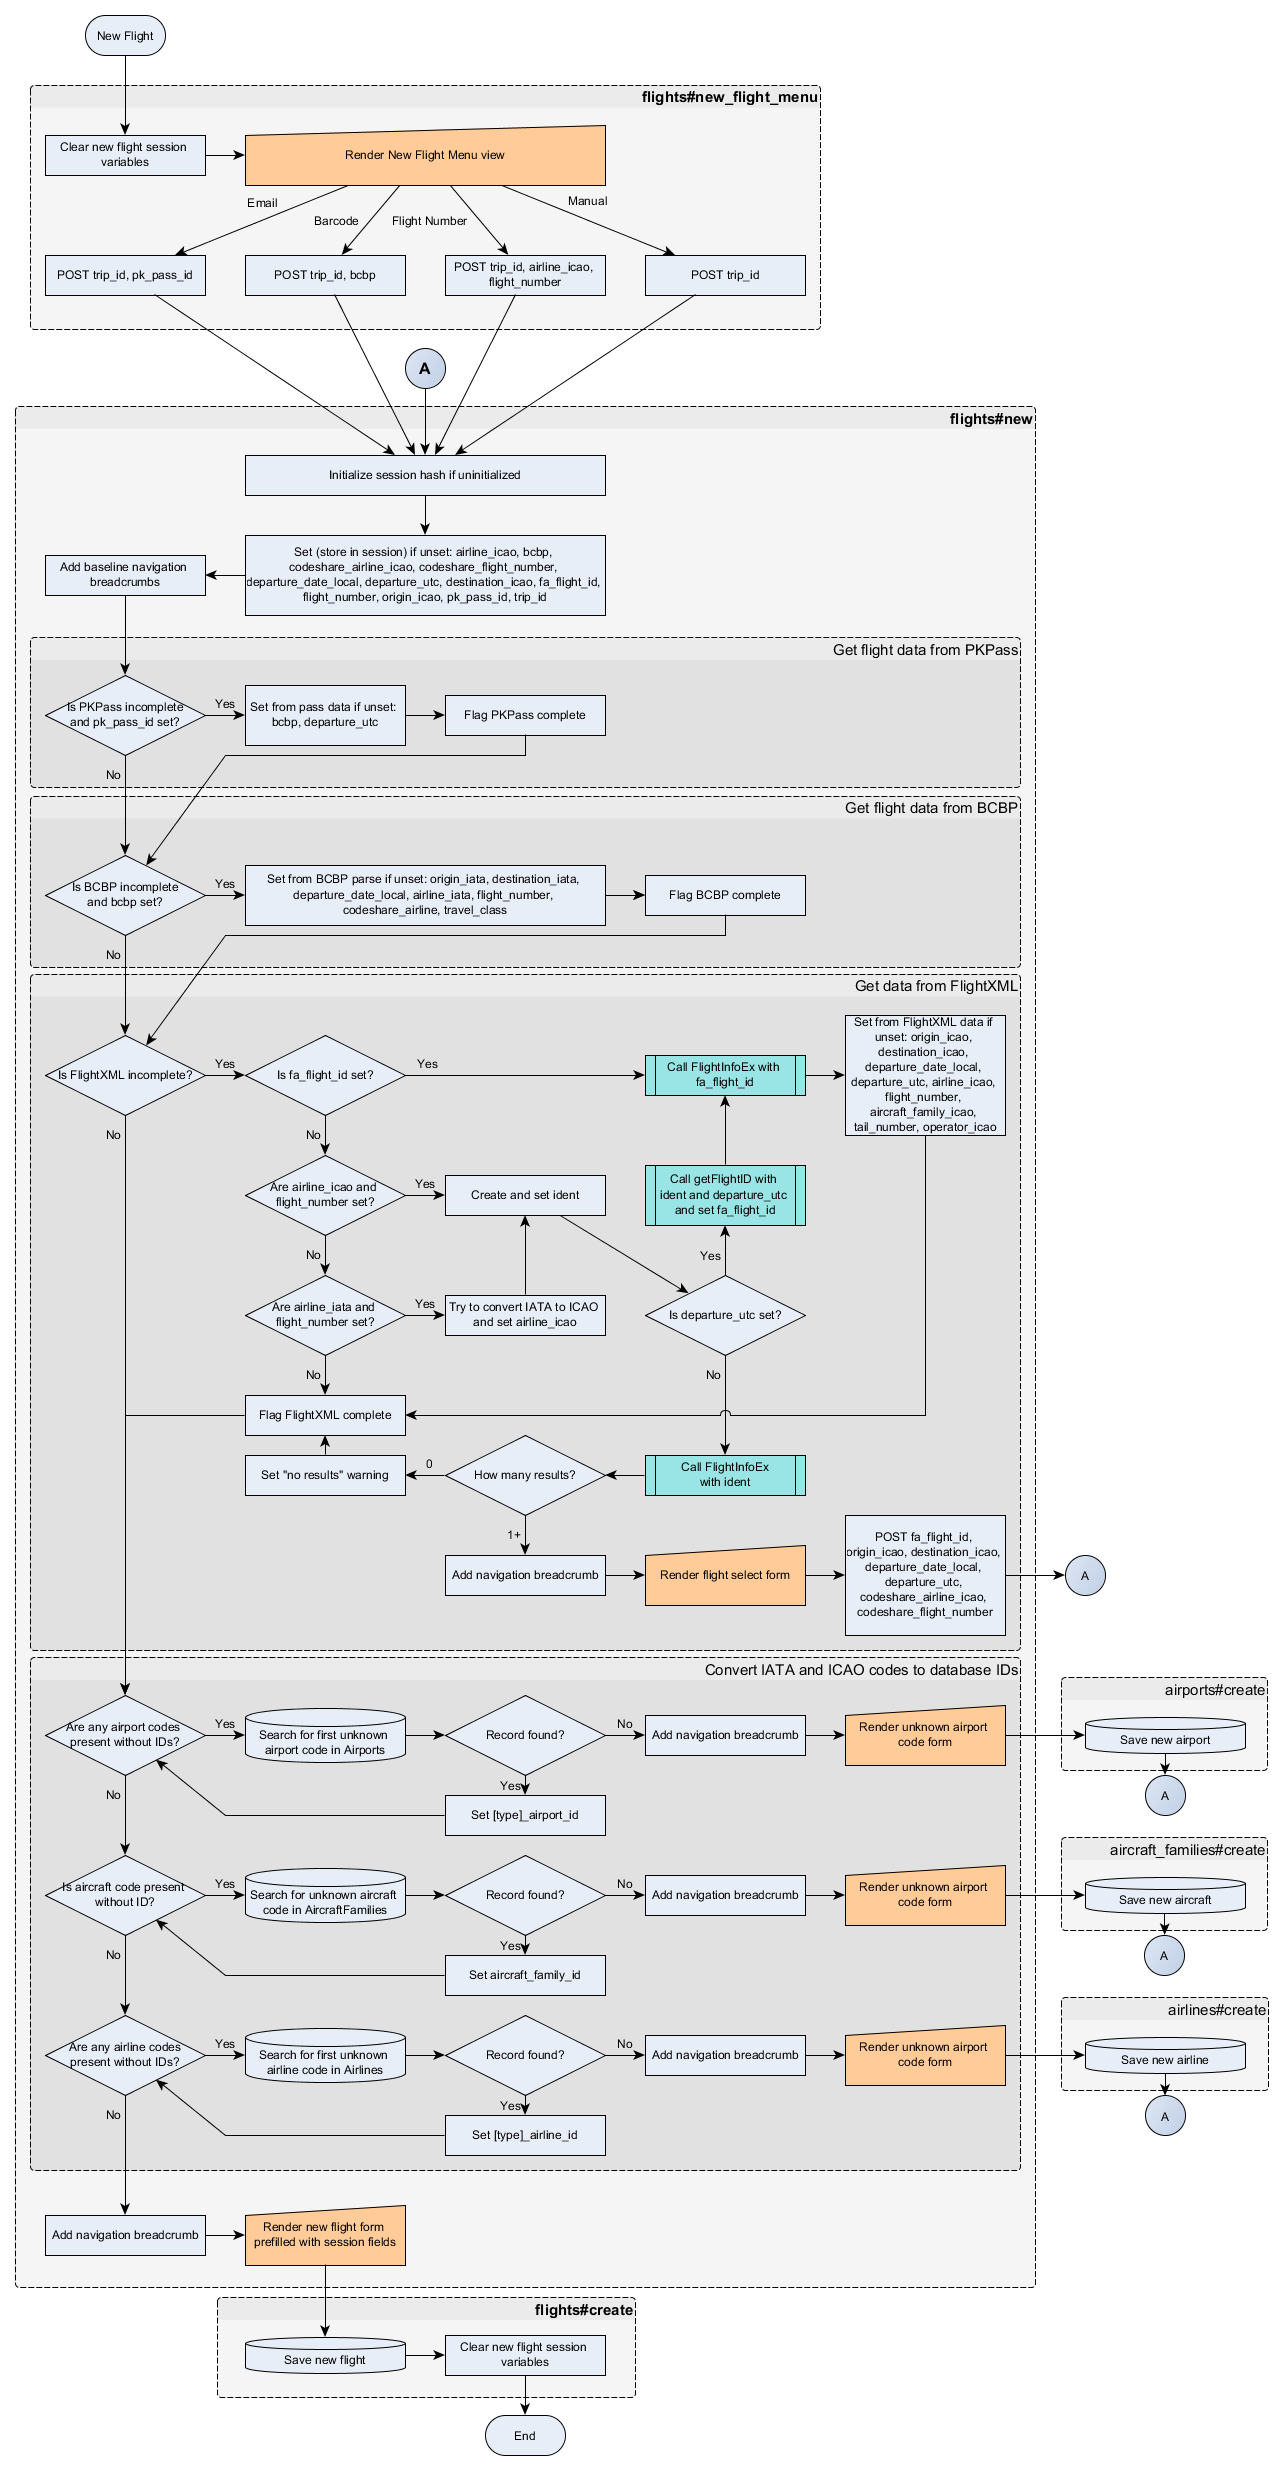 Flowchart showing the process for looking up a new flight. Flight Historian takes as much data as is provided from a PKPass, BCBP data, or a flight number, and then looks up the remainder using FlightAware's FlightXML API. If unknown airports, aircraft, or airlines are encountered, a form is displayed allowing it to be created. Once all that is accomplished, a new flight form is displayed, with fields prefilled with data from the previous steps.